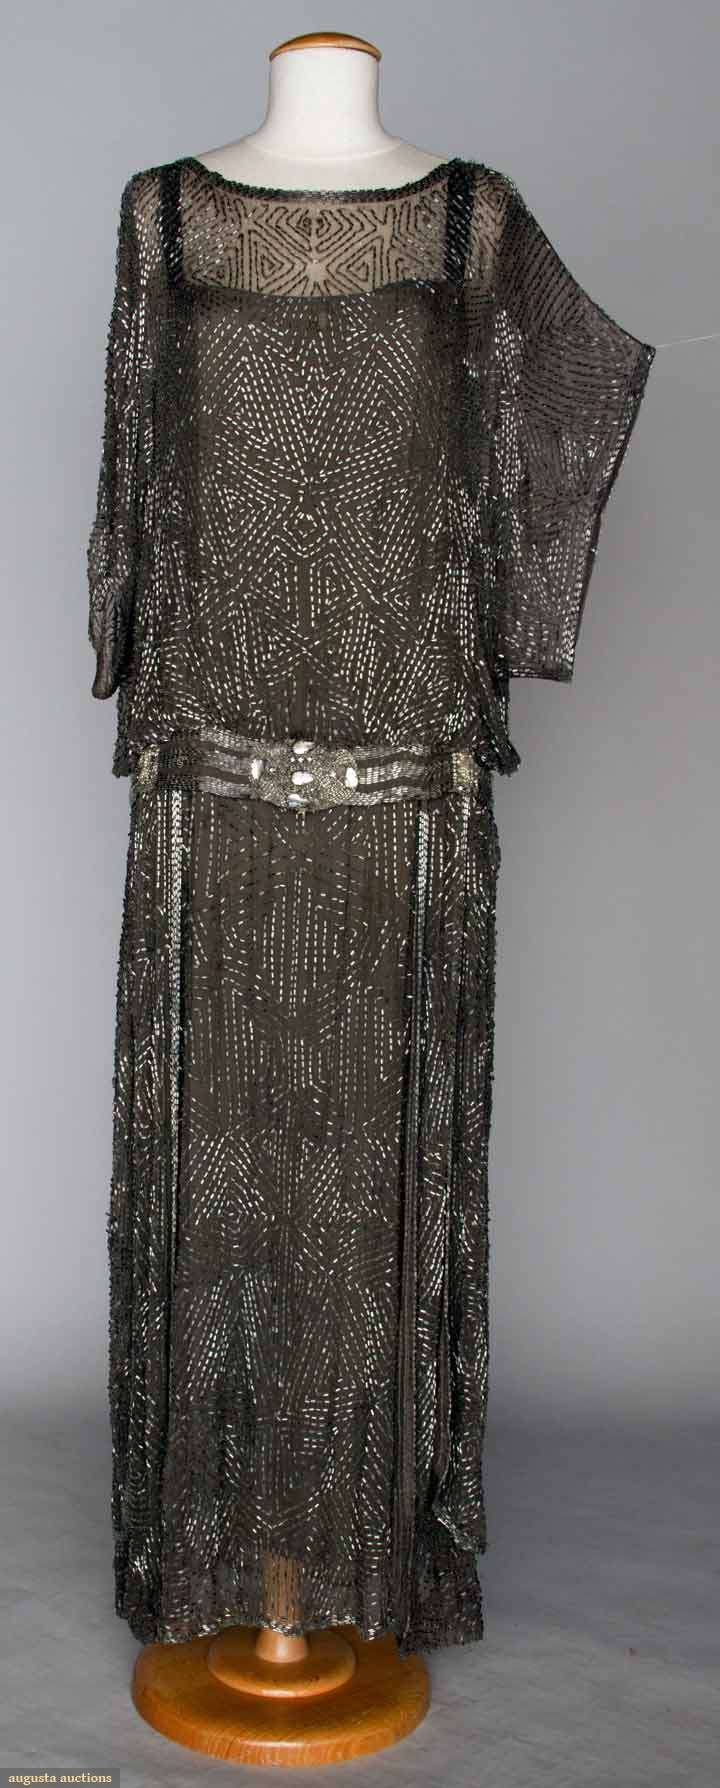 "SILVER BEADED DRESS, 1920s Dove gray silk chiffon, all-over beading in abstract geometric patterns, drop waist jeweled sash, B 34"", Drop W 36"", L 55"", (.5"" hole L shoulder & tiny tear on R, few loose beads) very good. MCNY via Augusta Auctions"